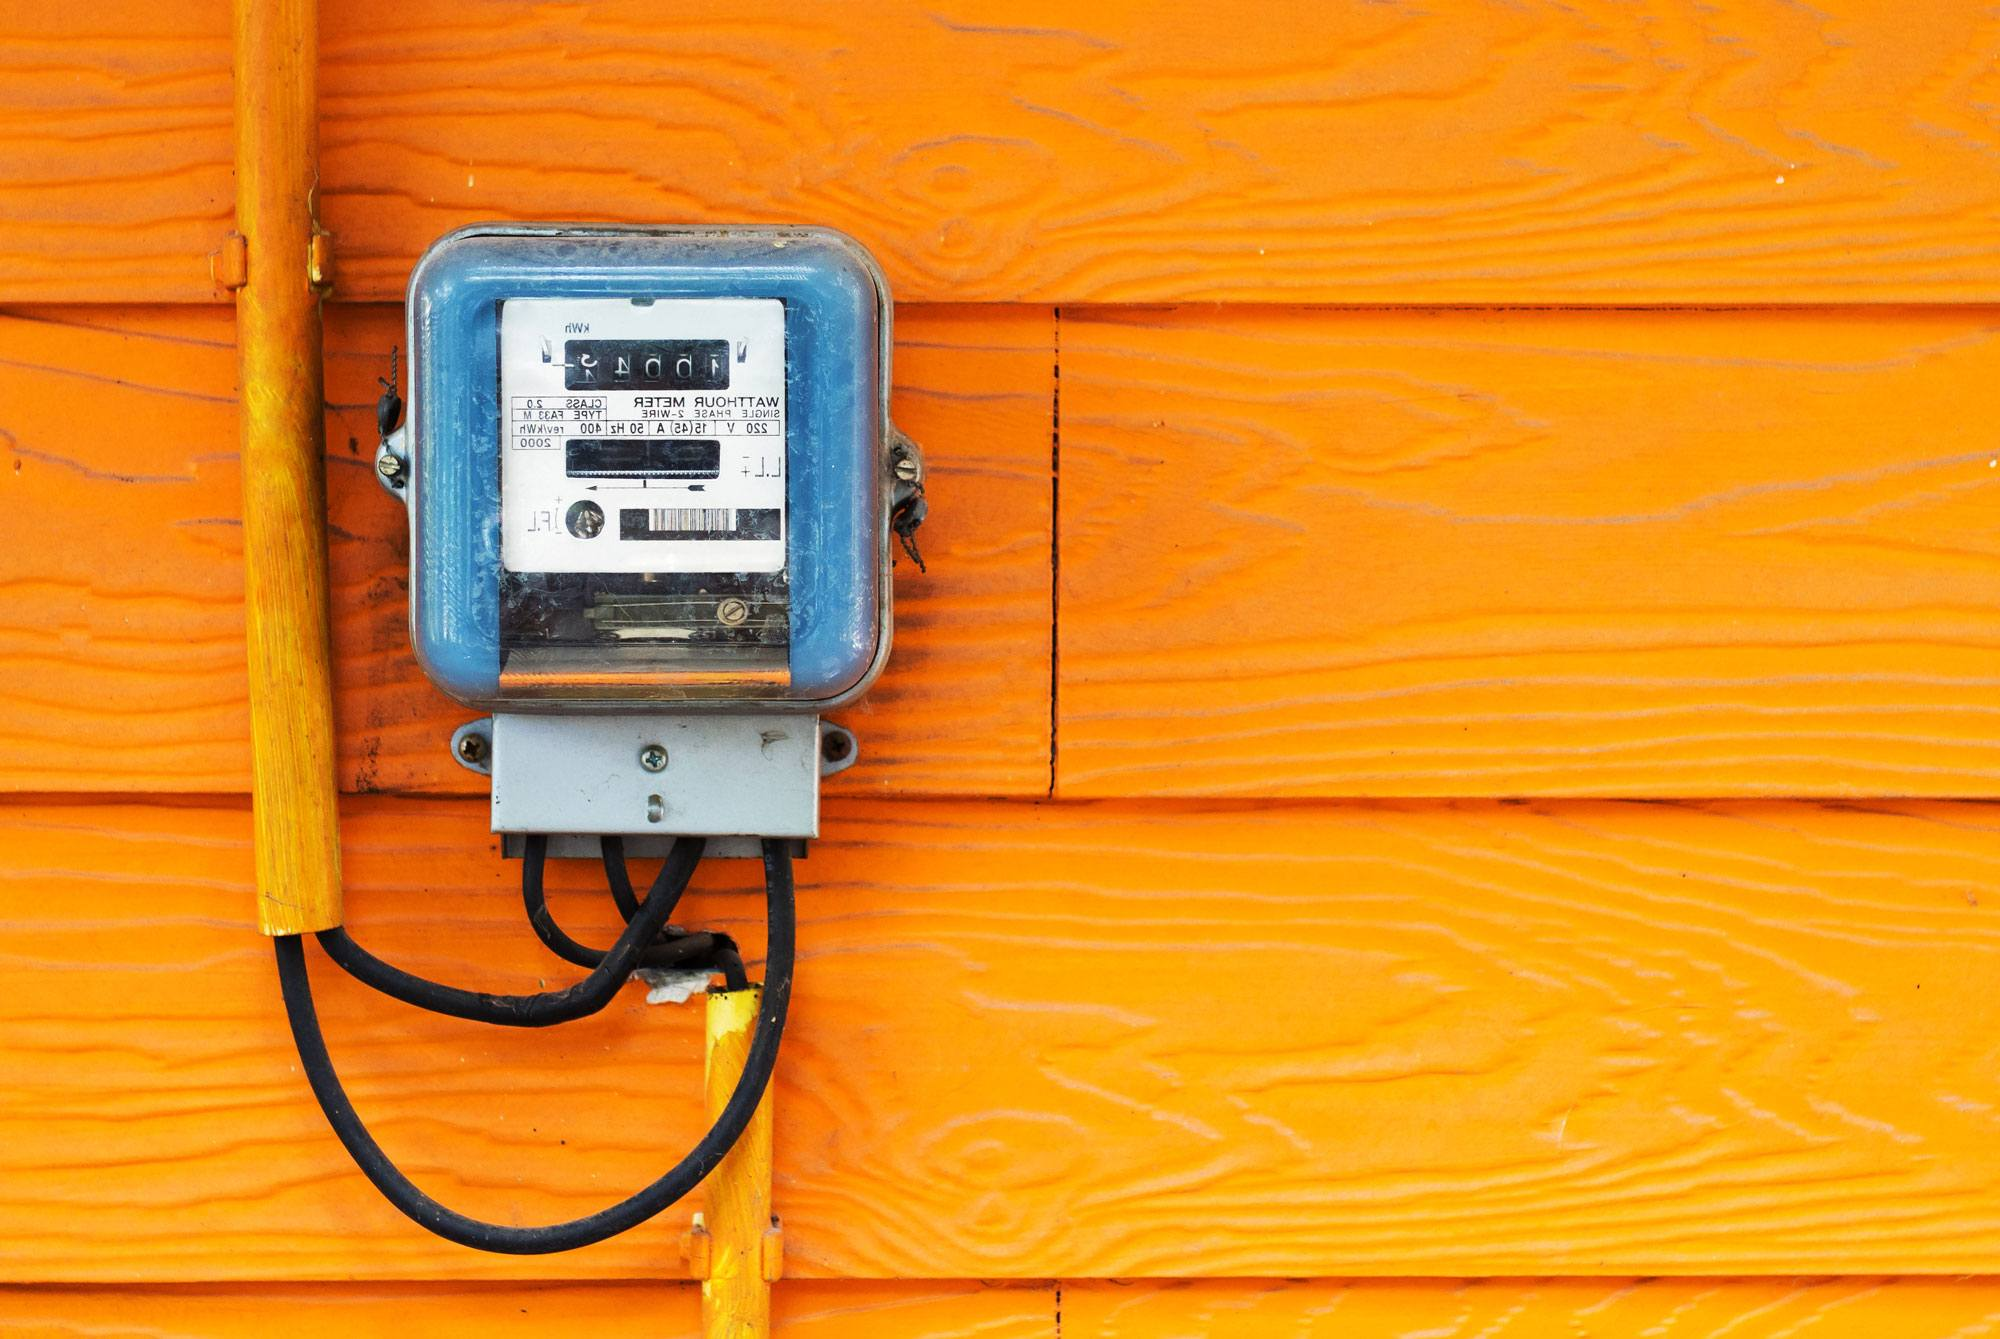 SE Electrical Services domestic outdoor meters